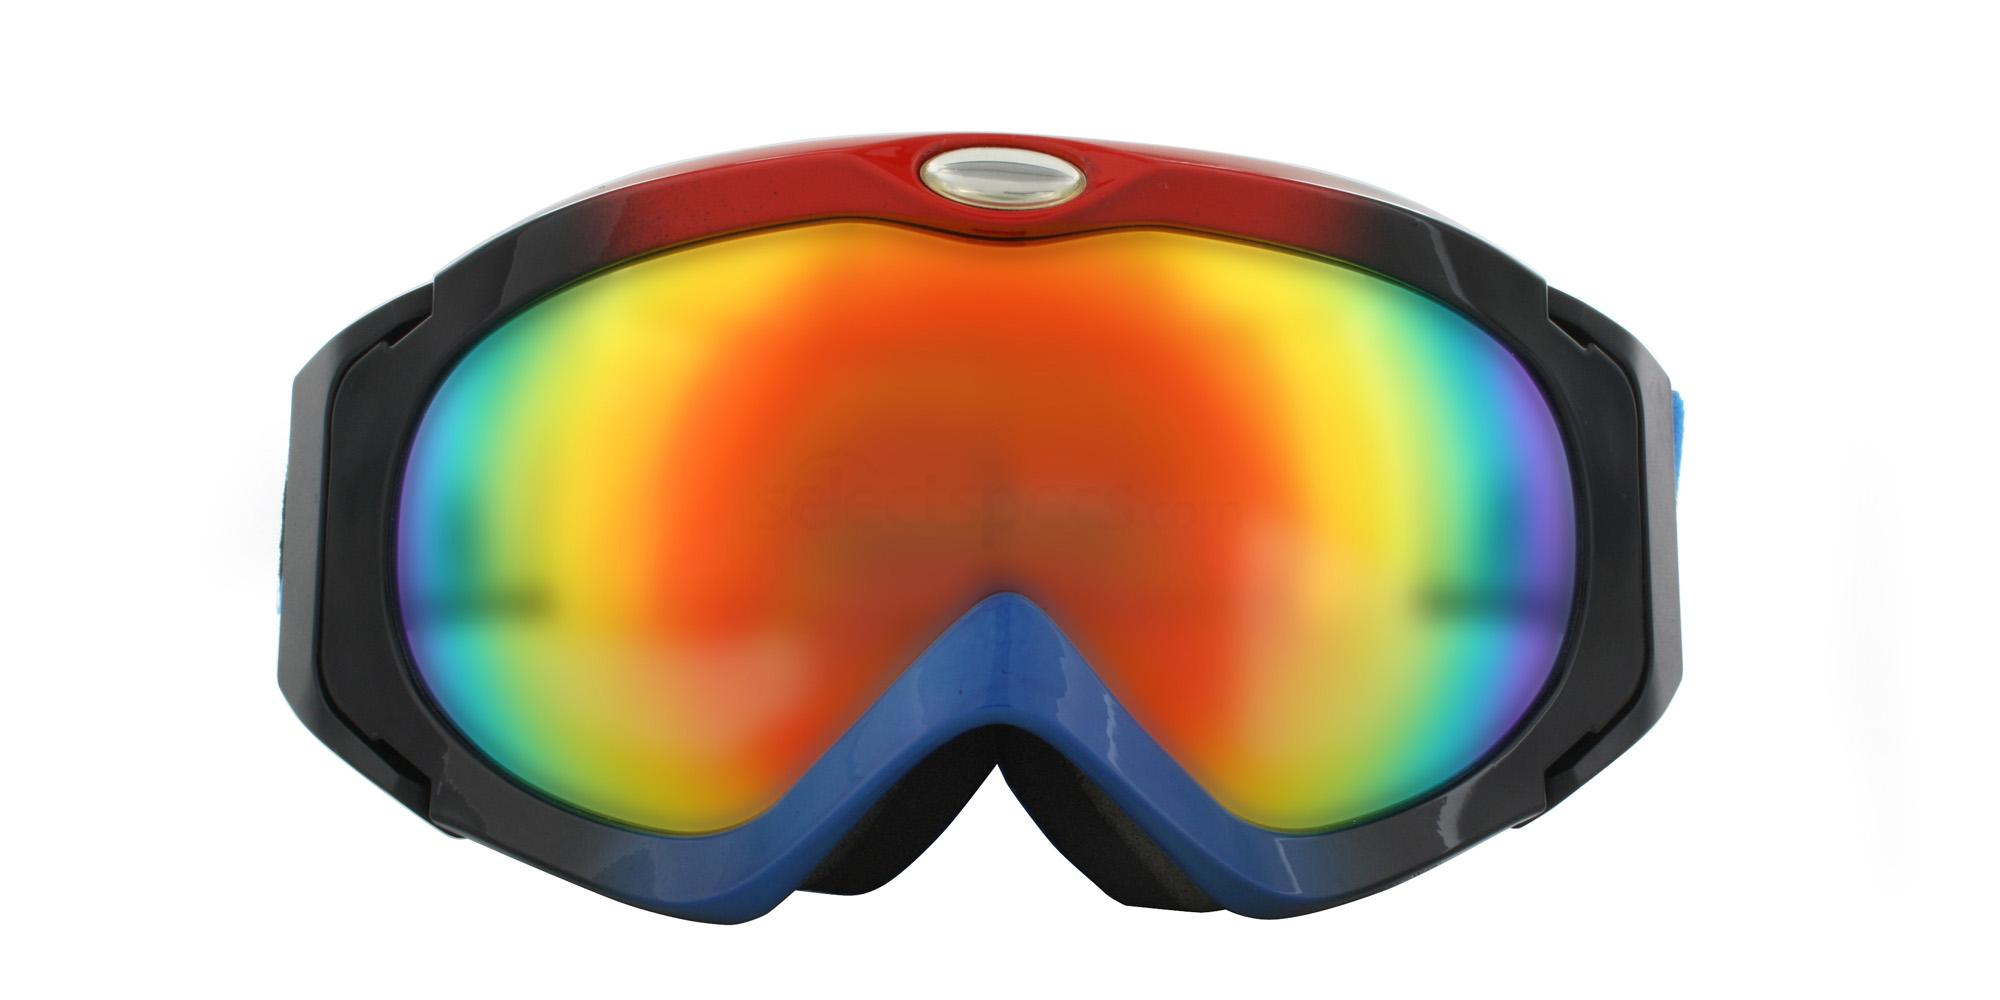 Black Blue Red H003 Ski Goggles, Aero